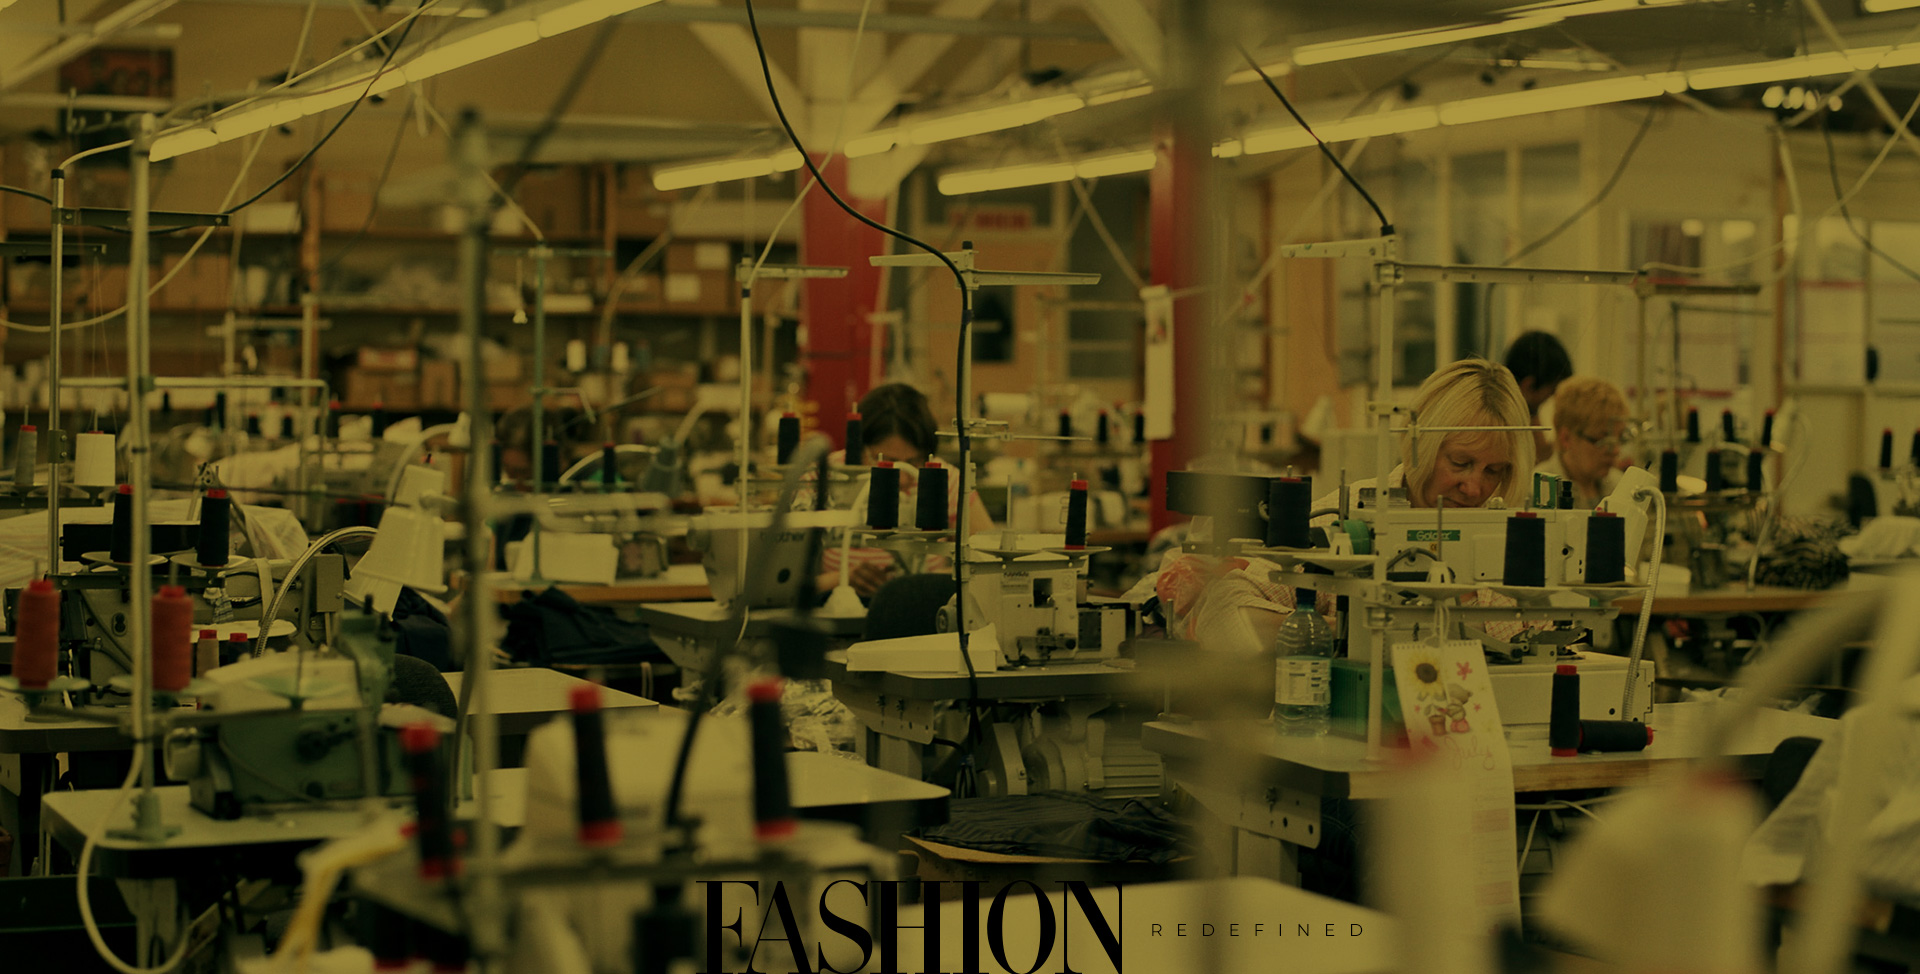 FULL SERVICE CLOTHING DEVELOPMENT AND MANUFACTURING